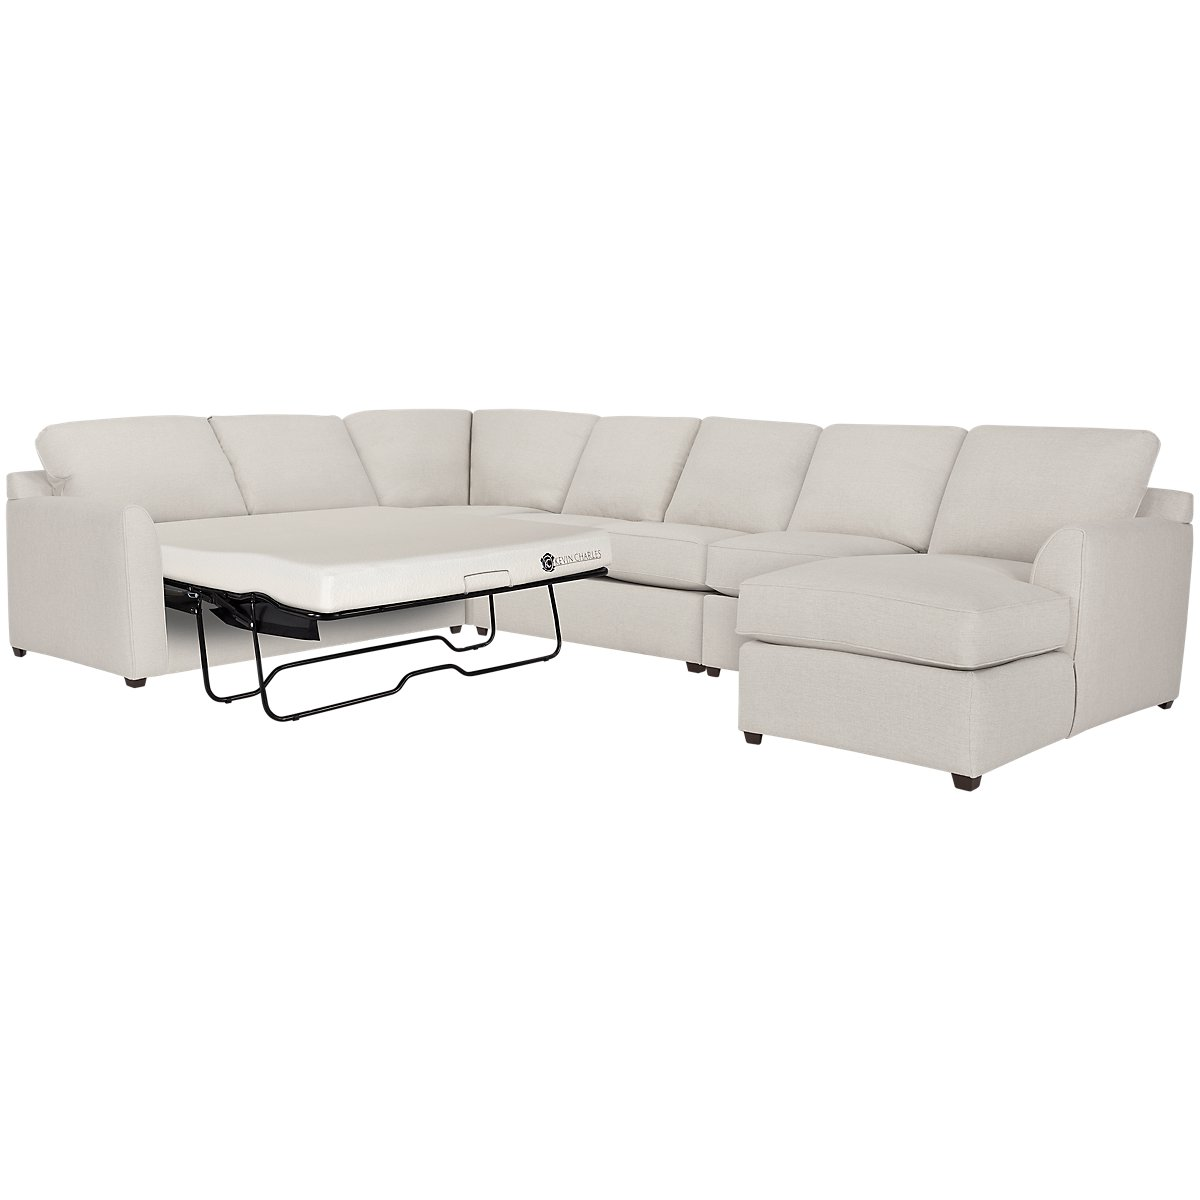 Asheville Light Taupe Fabric Right Chaise Memory Foam Sleeper Sectional